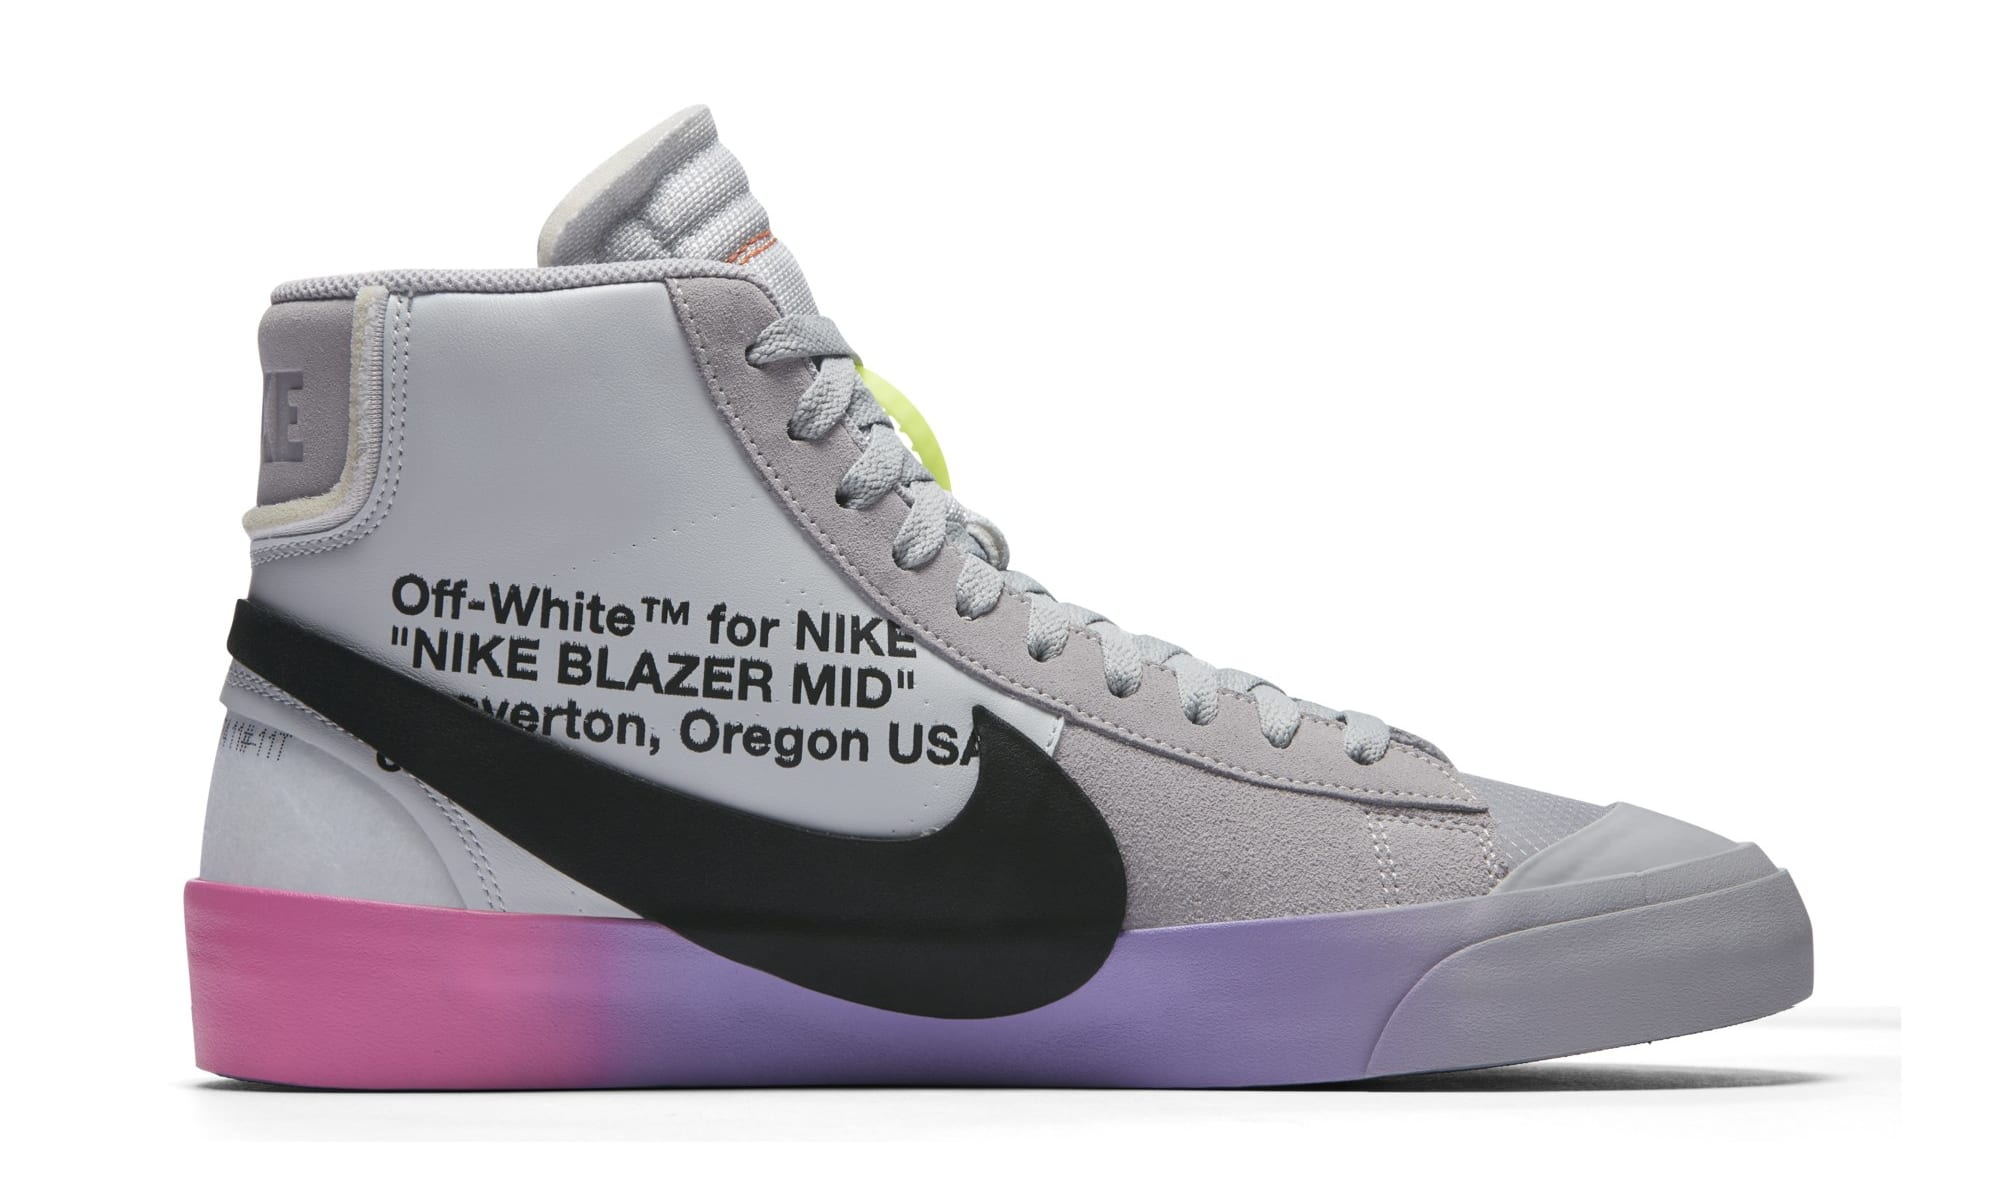 Serena Williams x Off-White x Nike Blazer Mid 'Queen' AA3832-001 (Medial)